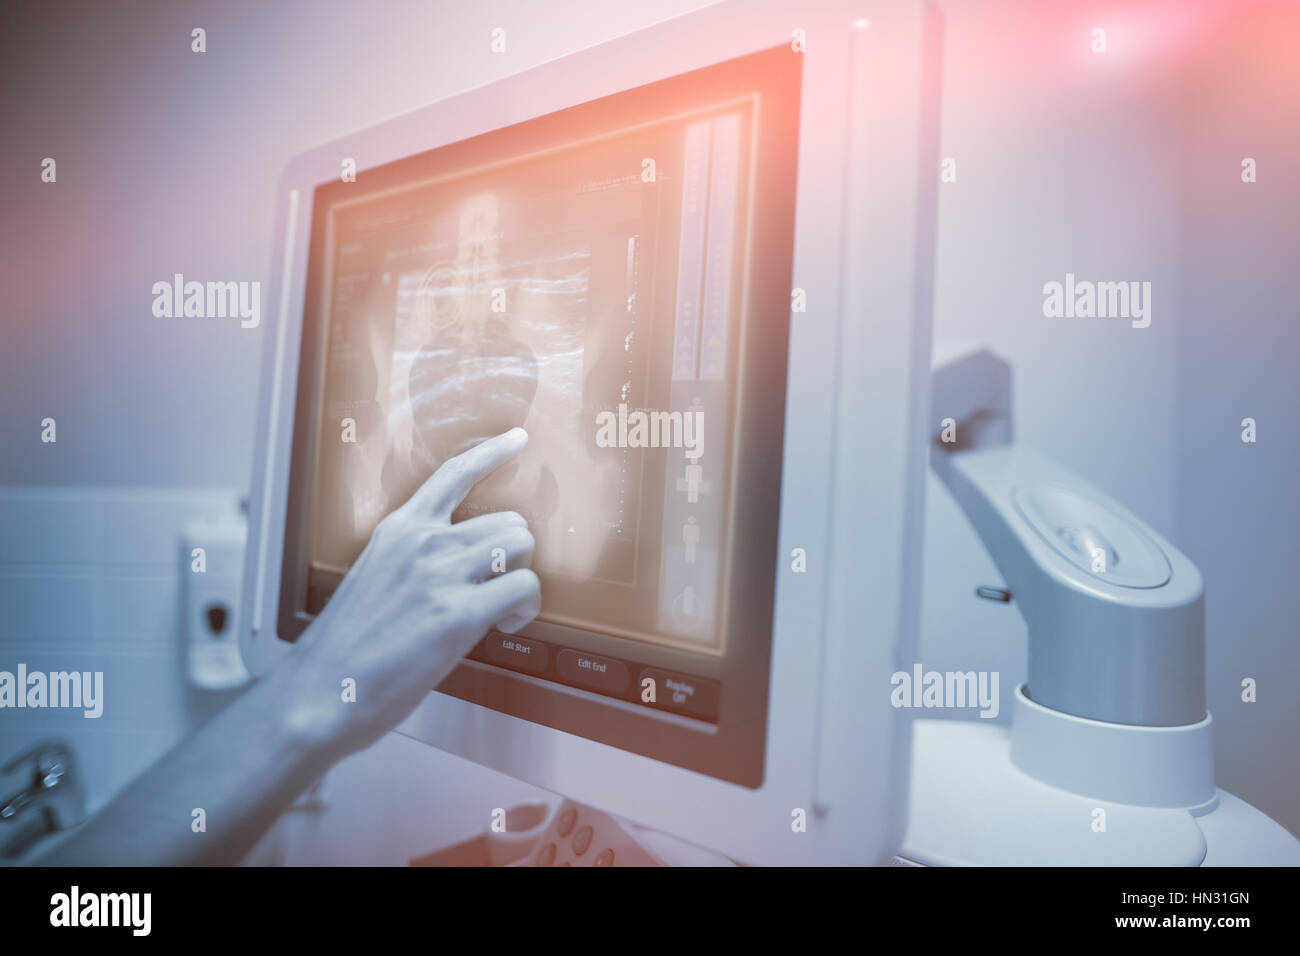 Xray of midsection of a human body against nurse pointing at ultrasonic monitor - Stock Image